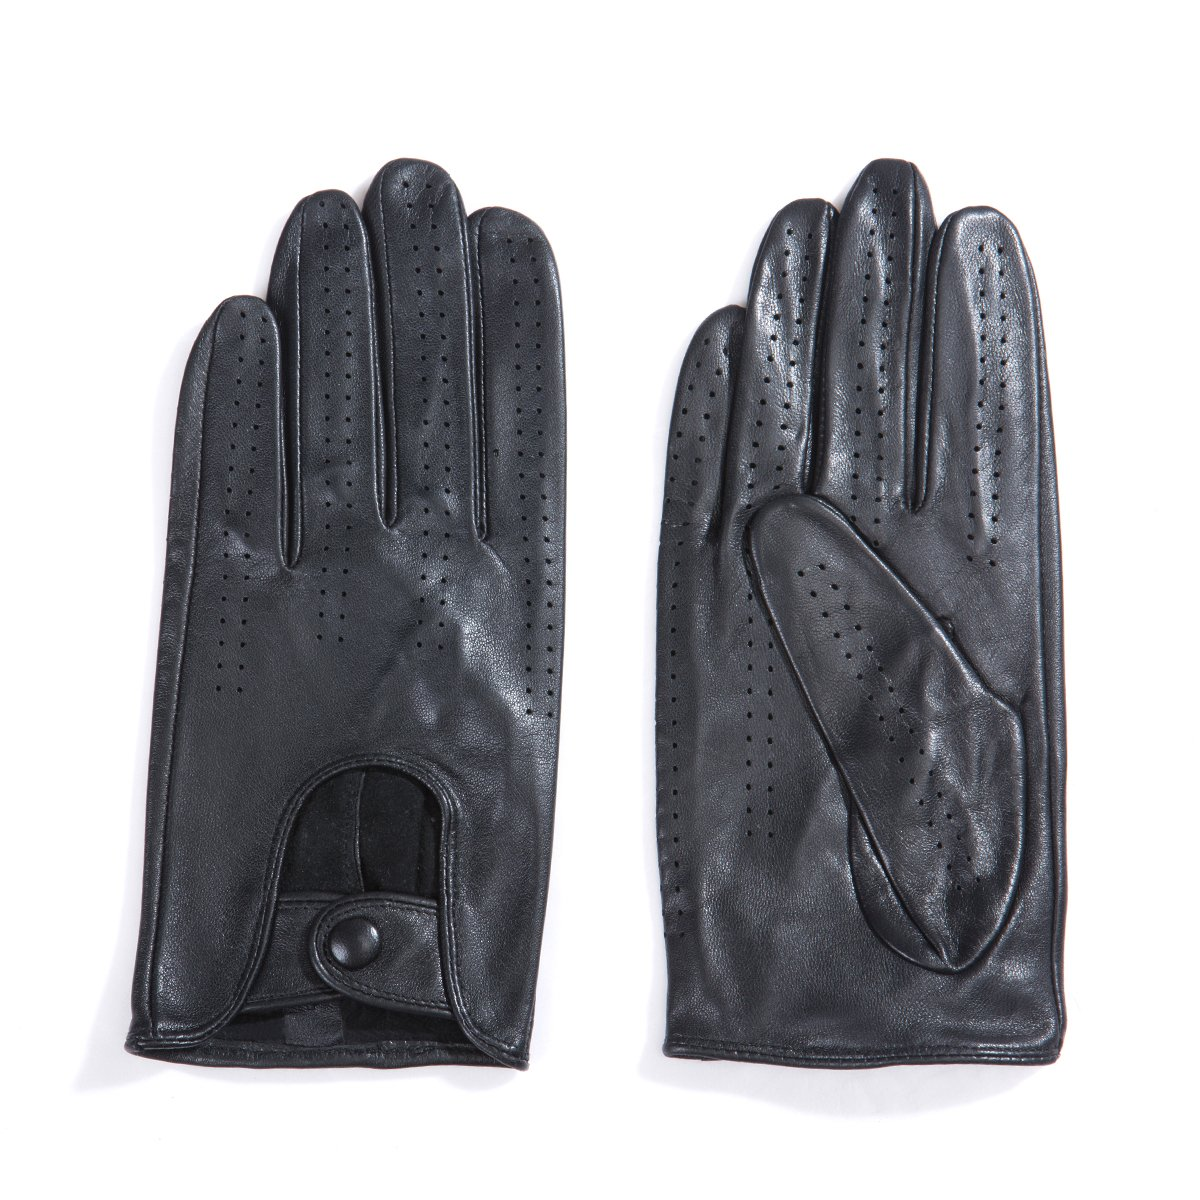 MATSU Classic Women Driving Touchscreen Lambskin Leather Gloves Available for Rivets DIY #9237 (XL, Black) by Matsu Gloves (Image #7)